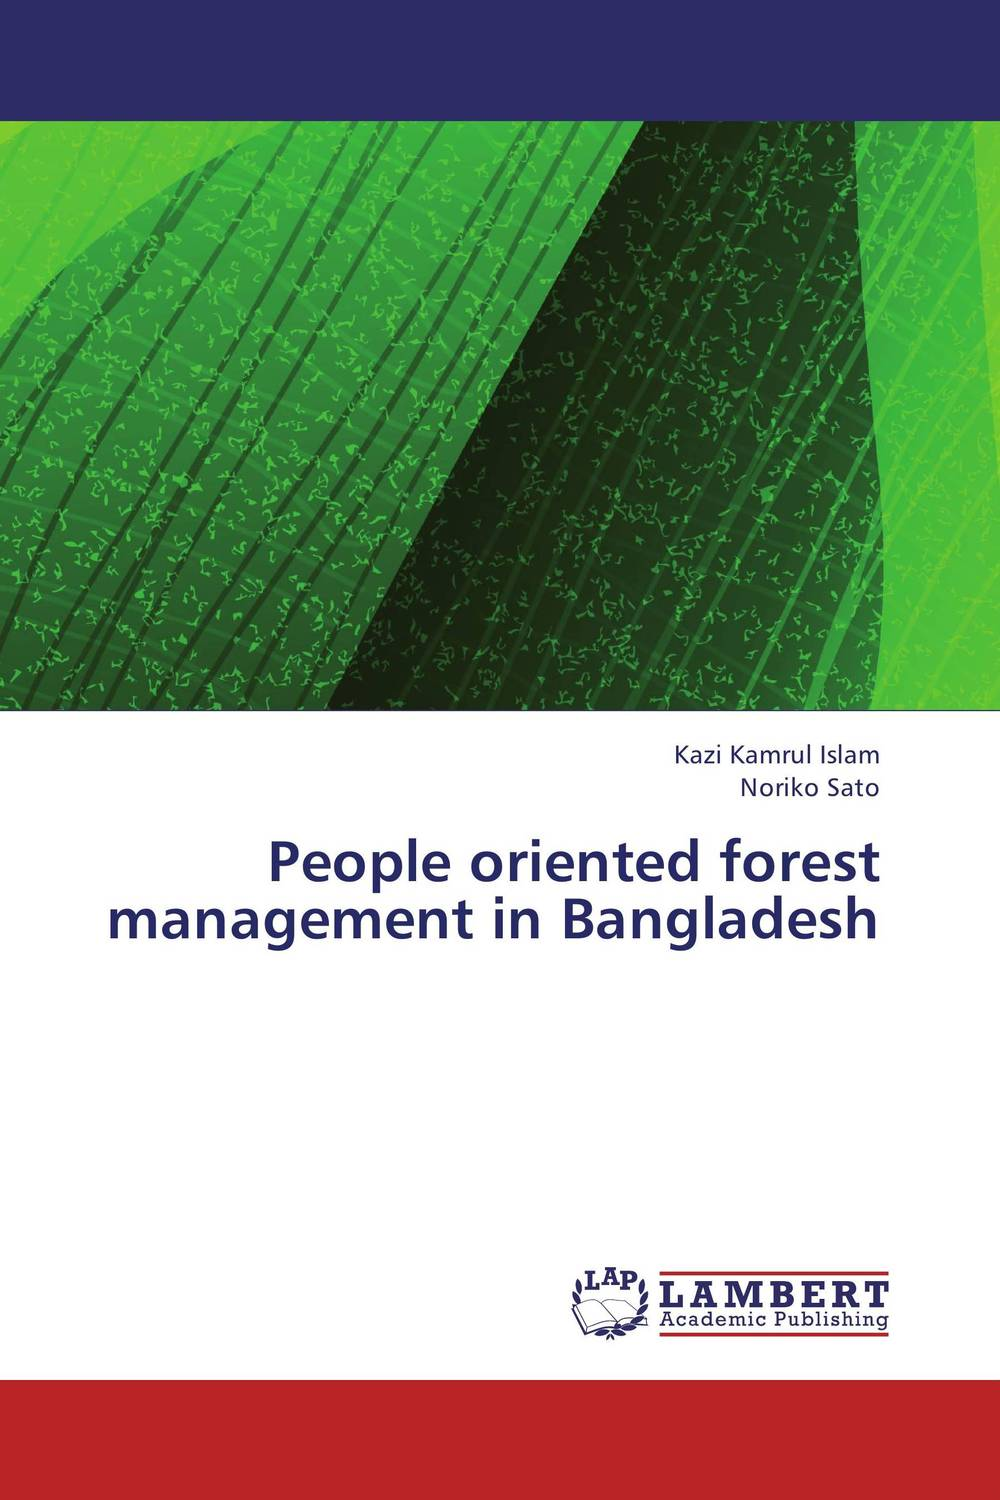 где купить People oriented forest management in Bangladesh по лучшей цене